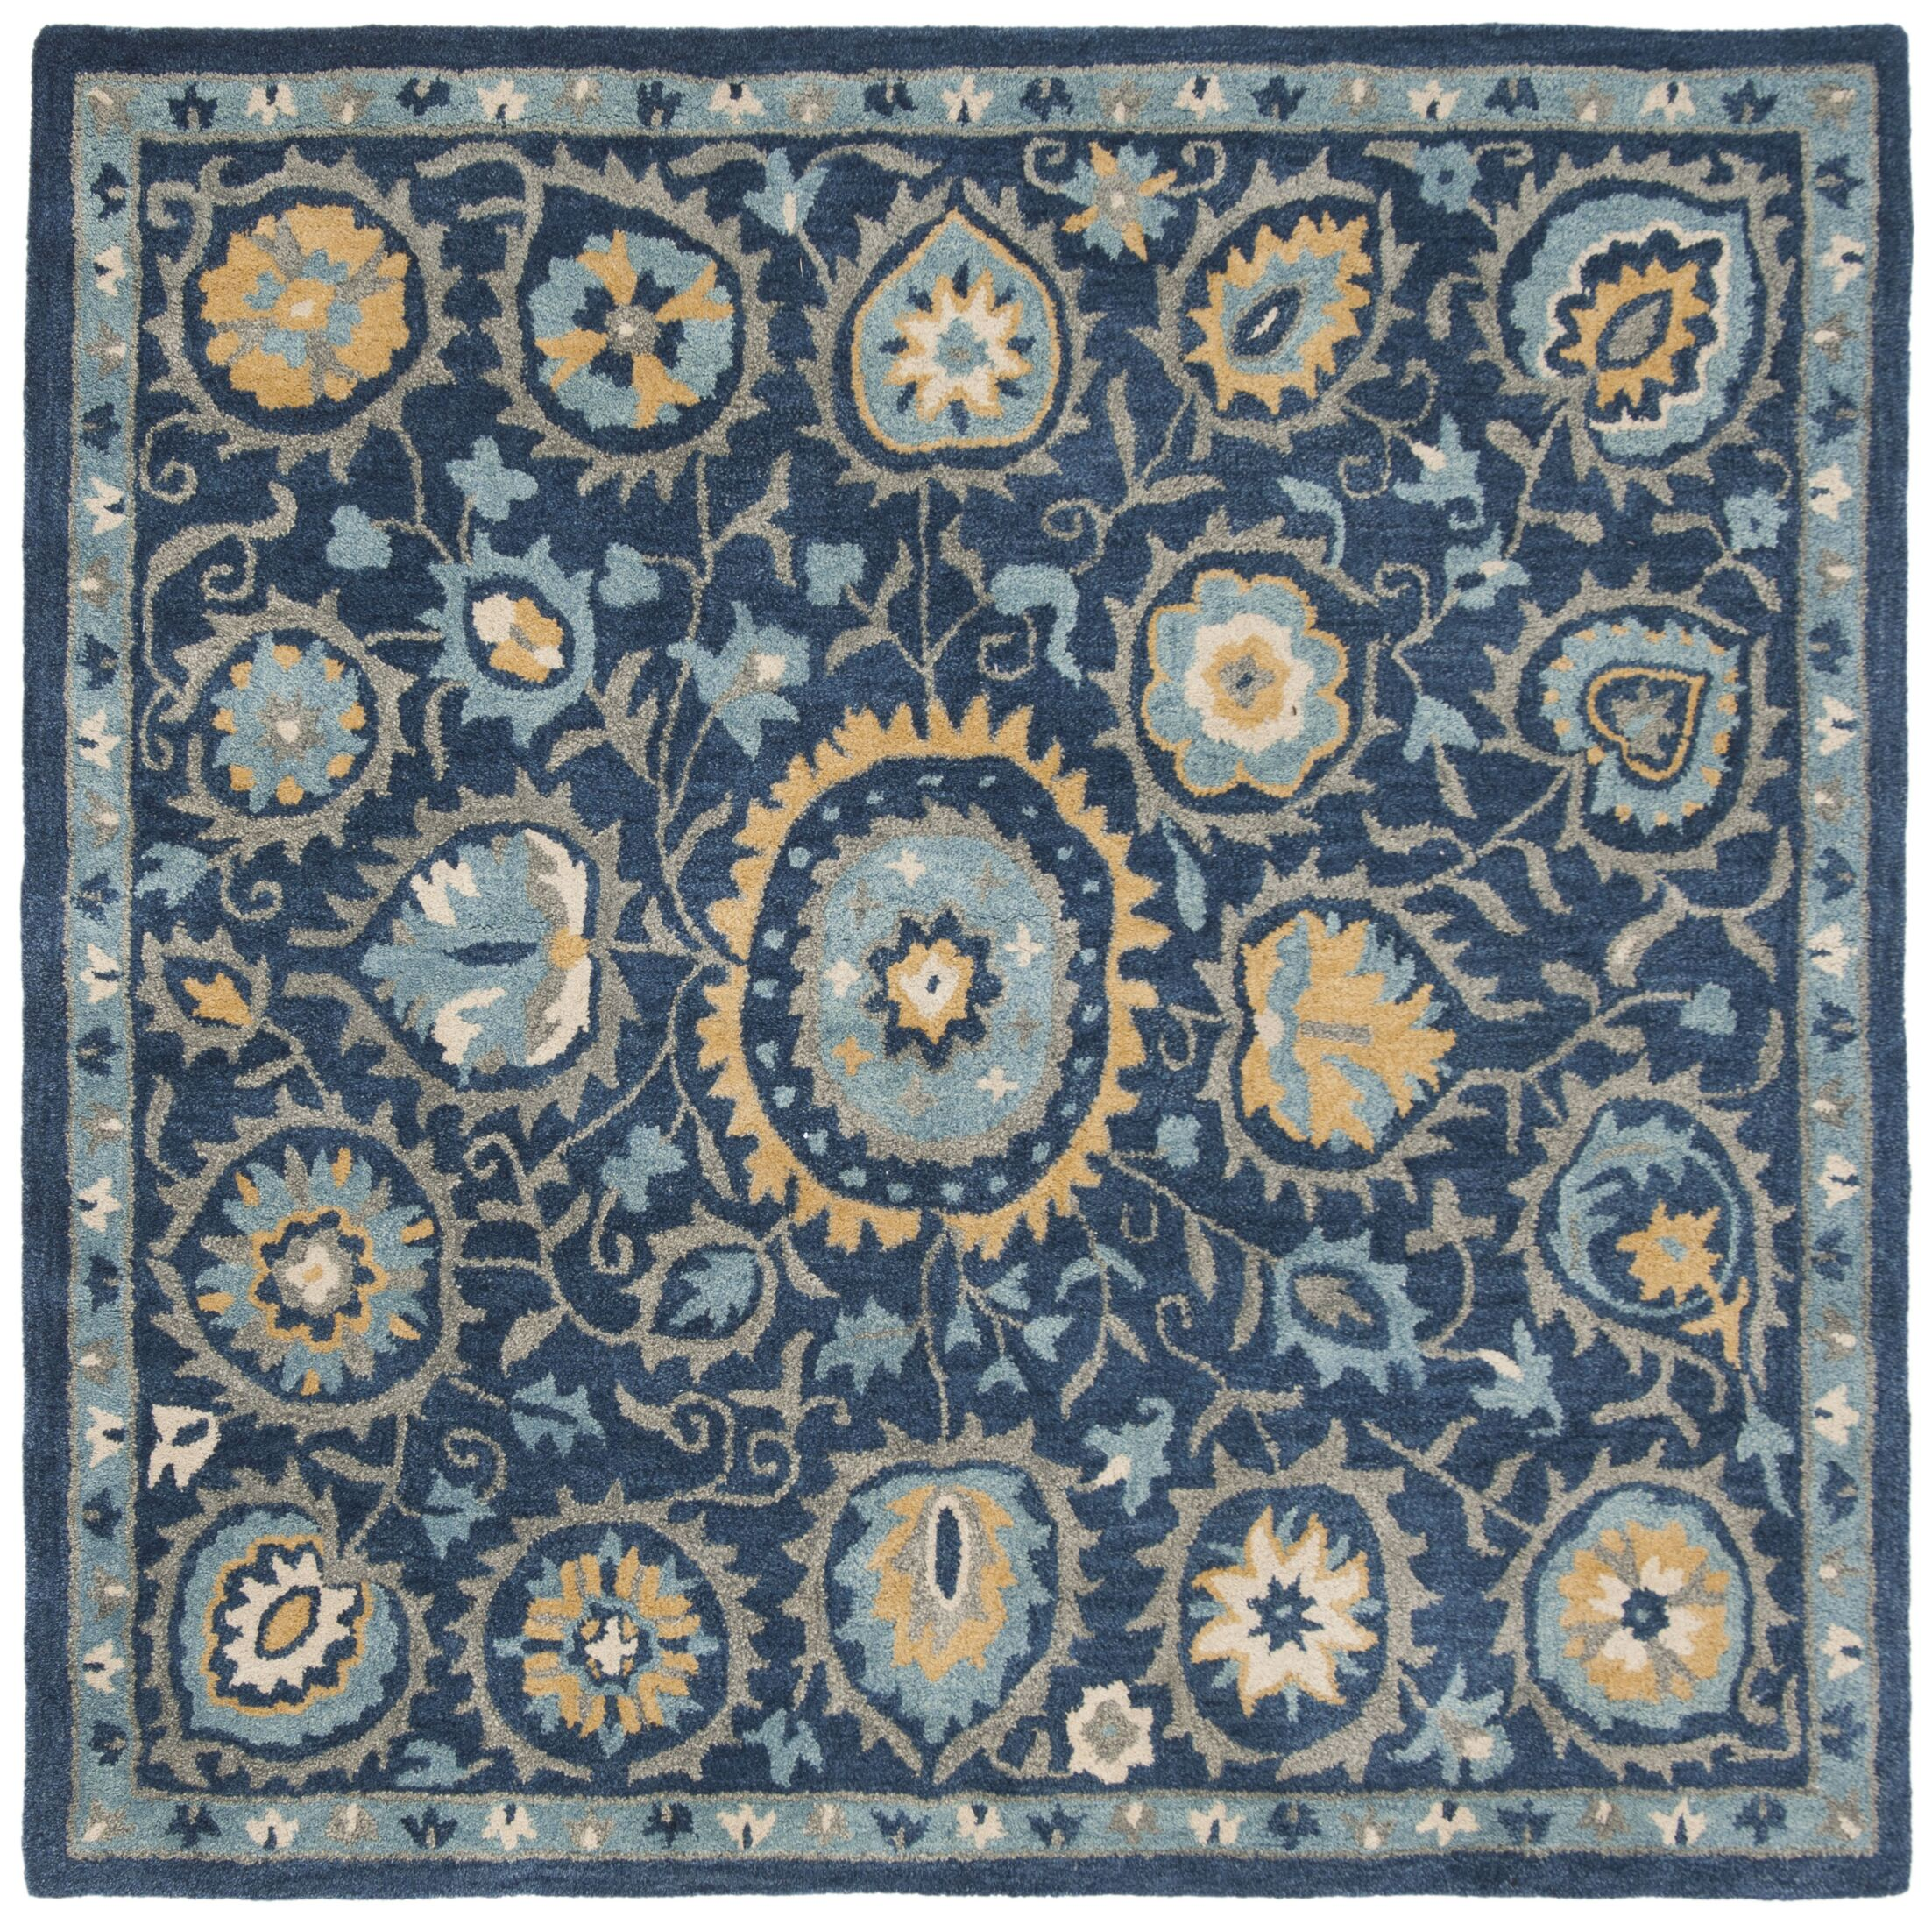 Dipietro Hand-Tufted Wool Blue Area Rug Rug Size: Square 6'